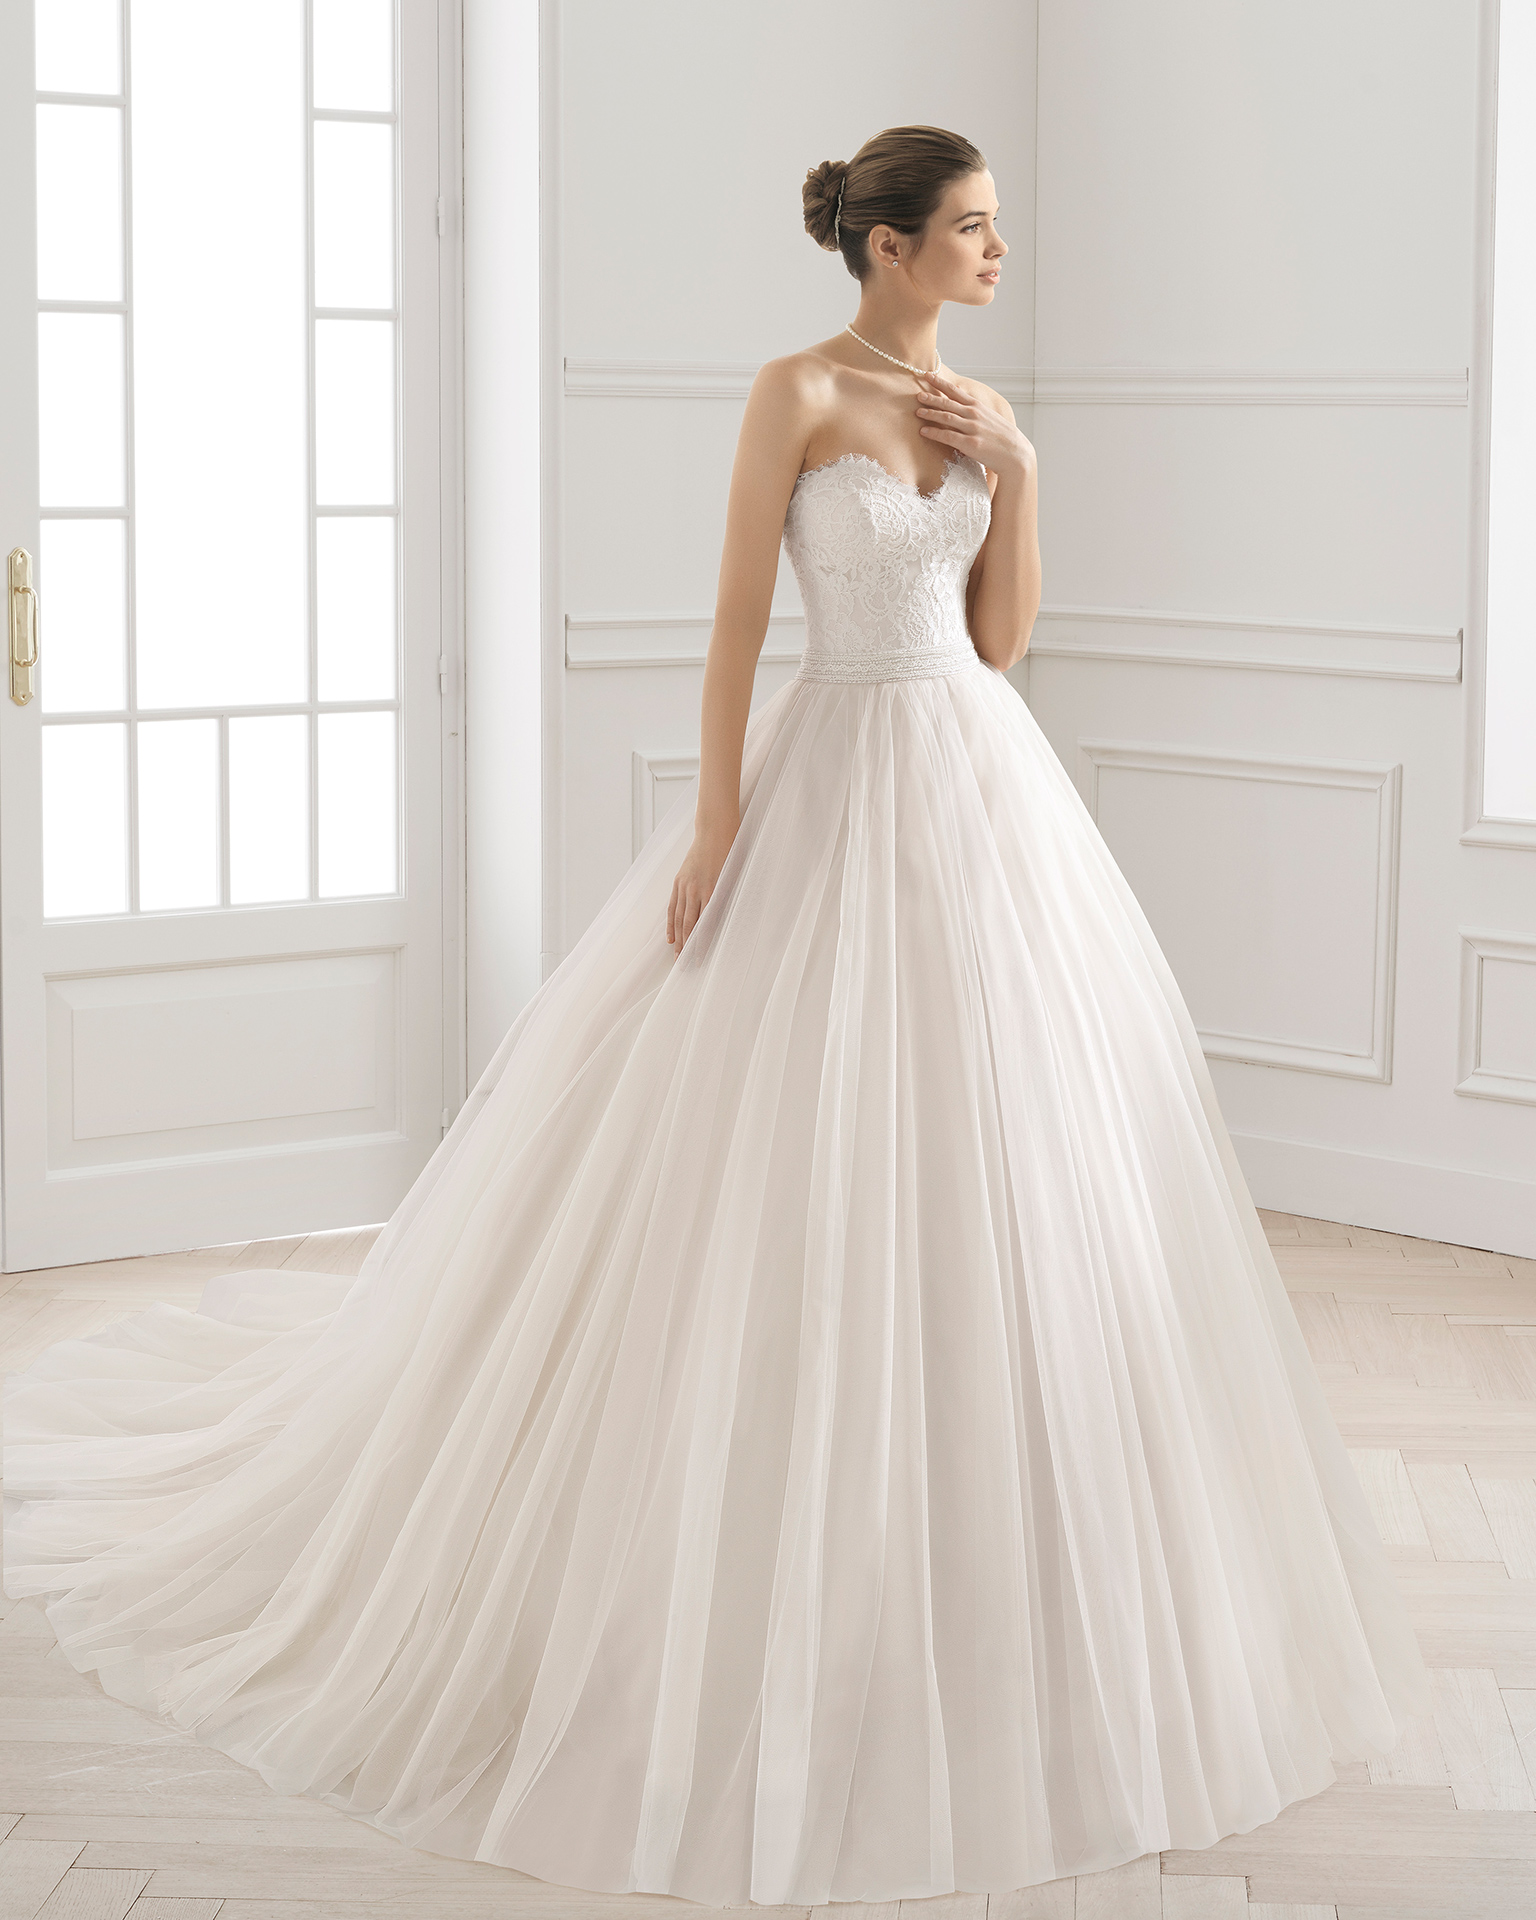 Princess-style wedding dress with lace bodice, sweetheart neckline and full tulle skirt, in rose and natural.